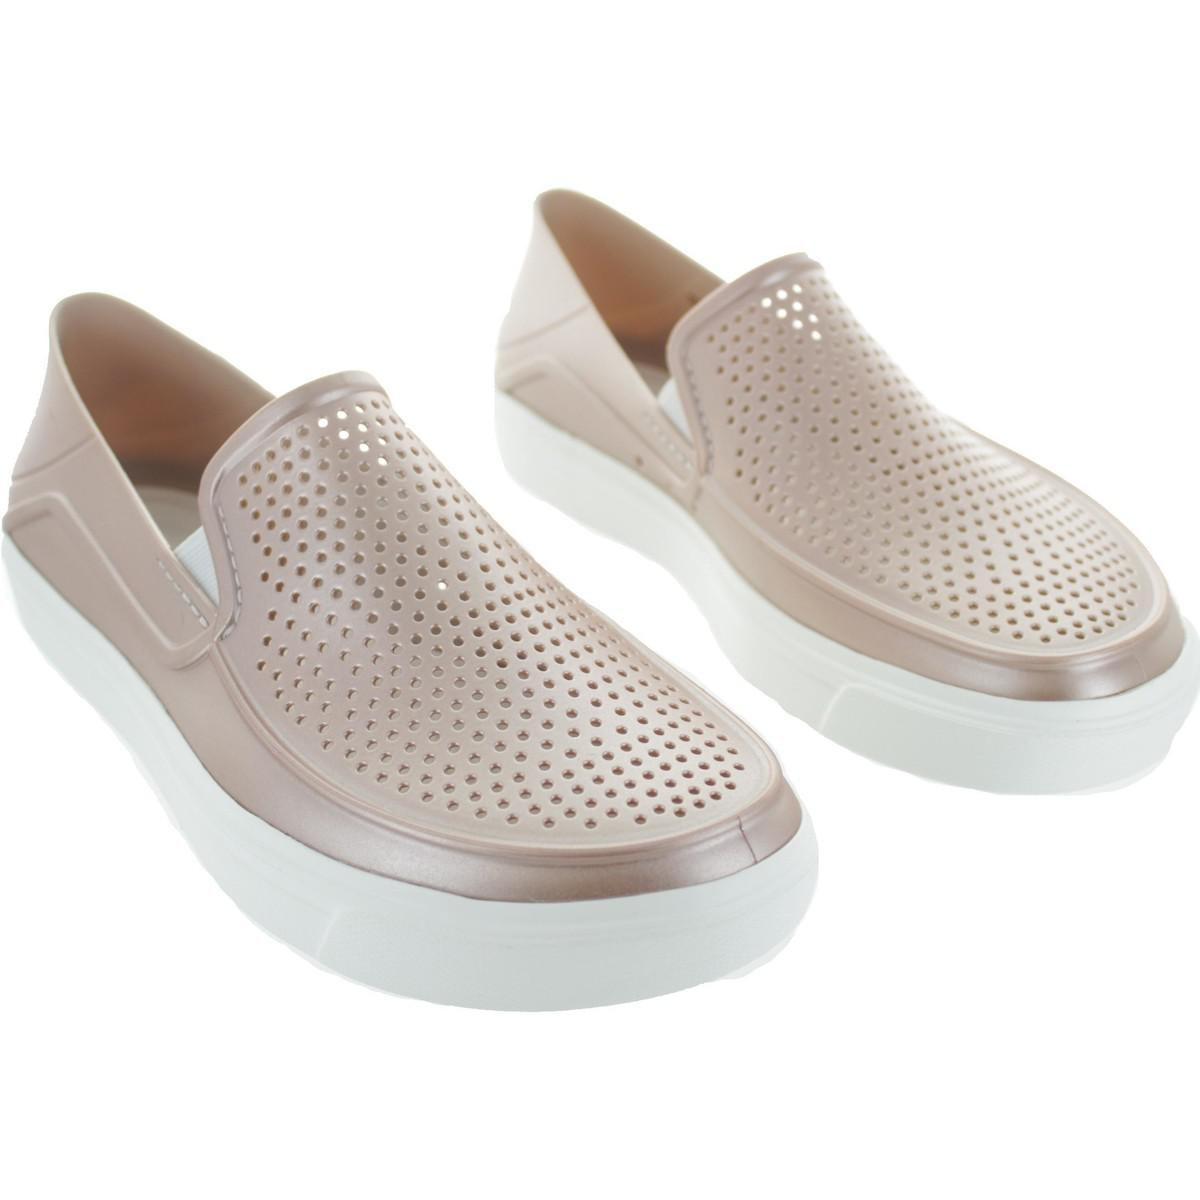 40526ab03a42 Crocs™ Citilane Roka Women s Loafers   Casual Shoes In Silver in ...